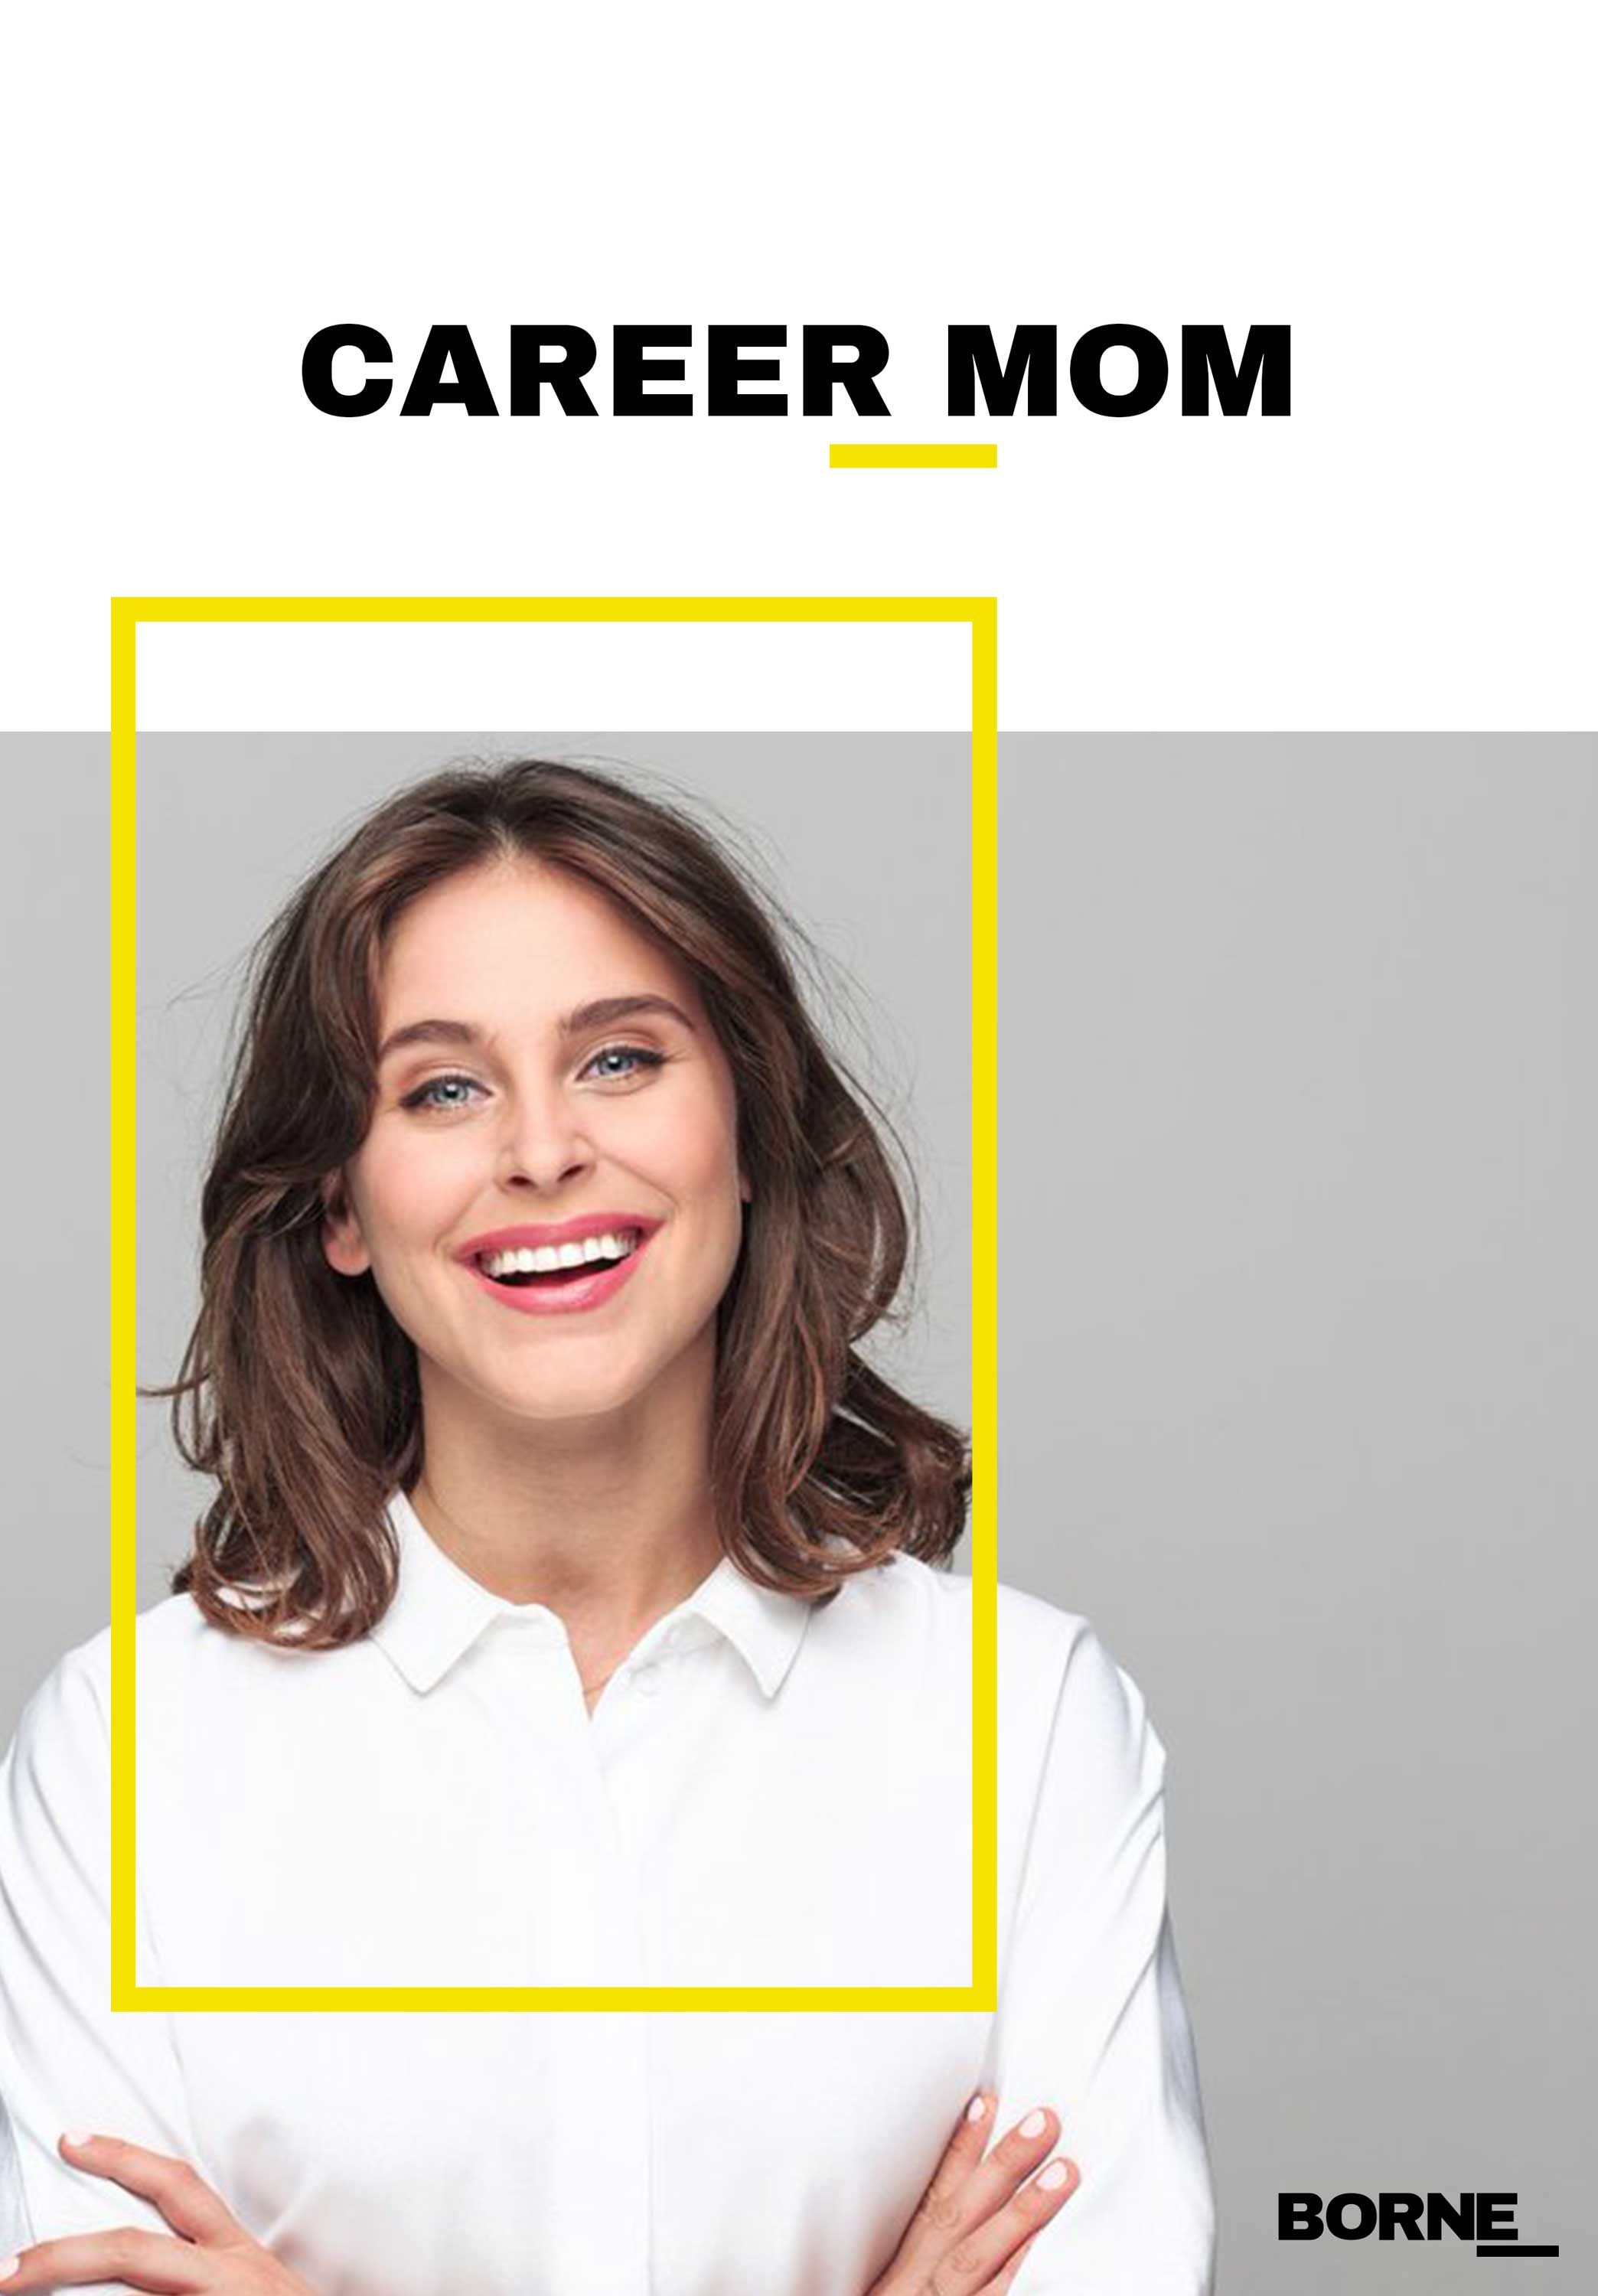 proposition-2-career-mom-12070452